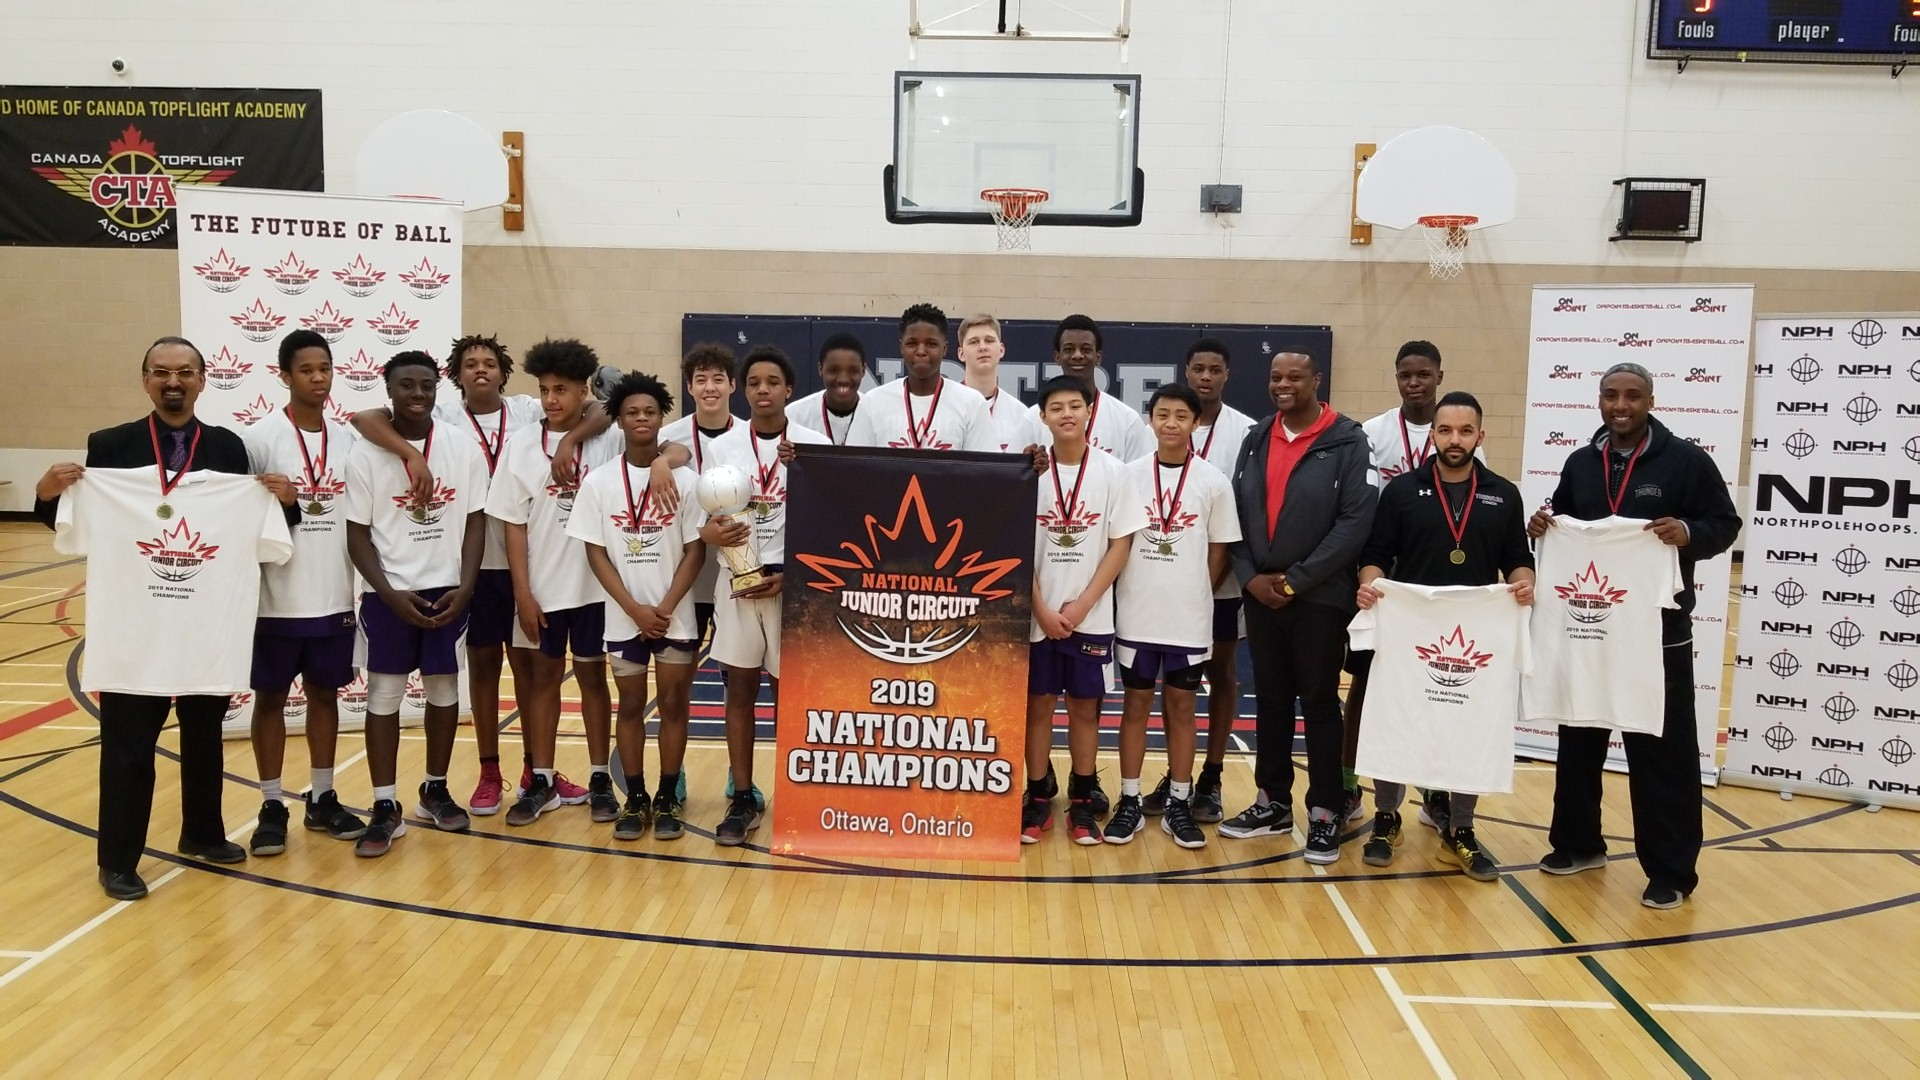 Inaugural NJC All-Star Classic features some of the world's top Jr. Boys basketball players